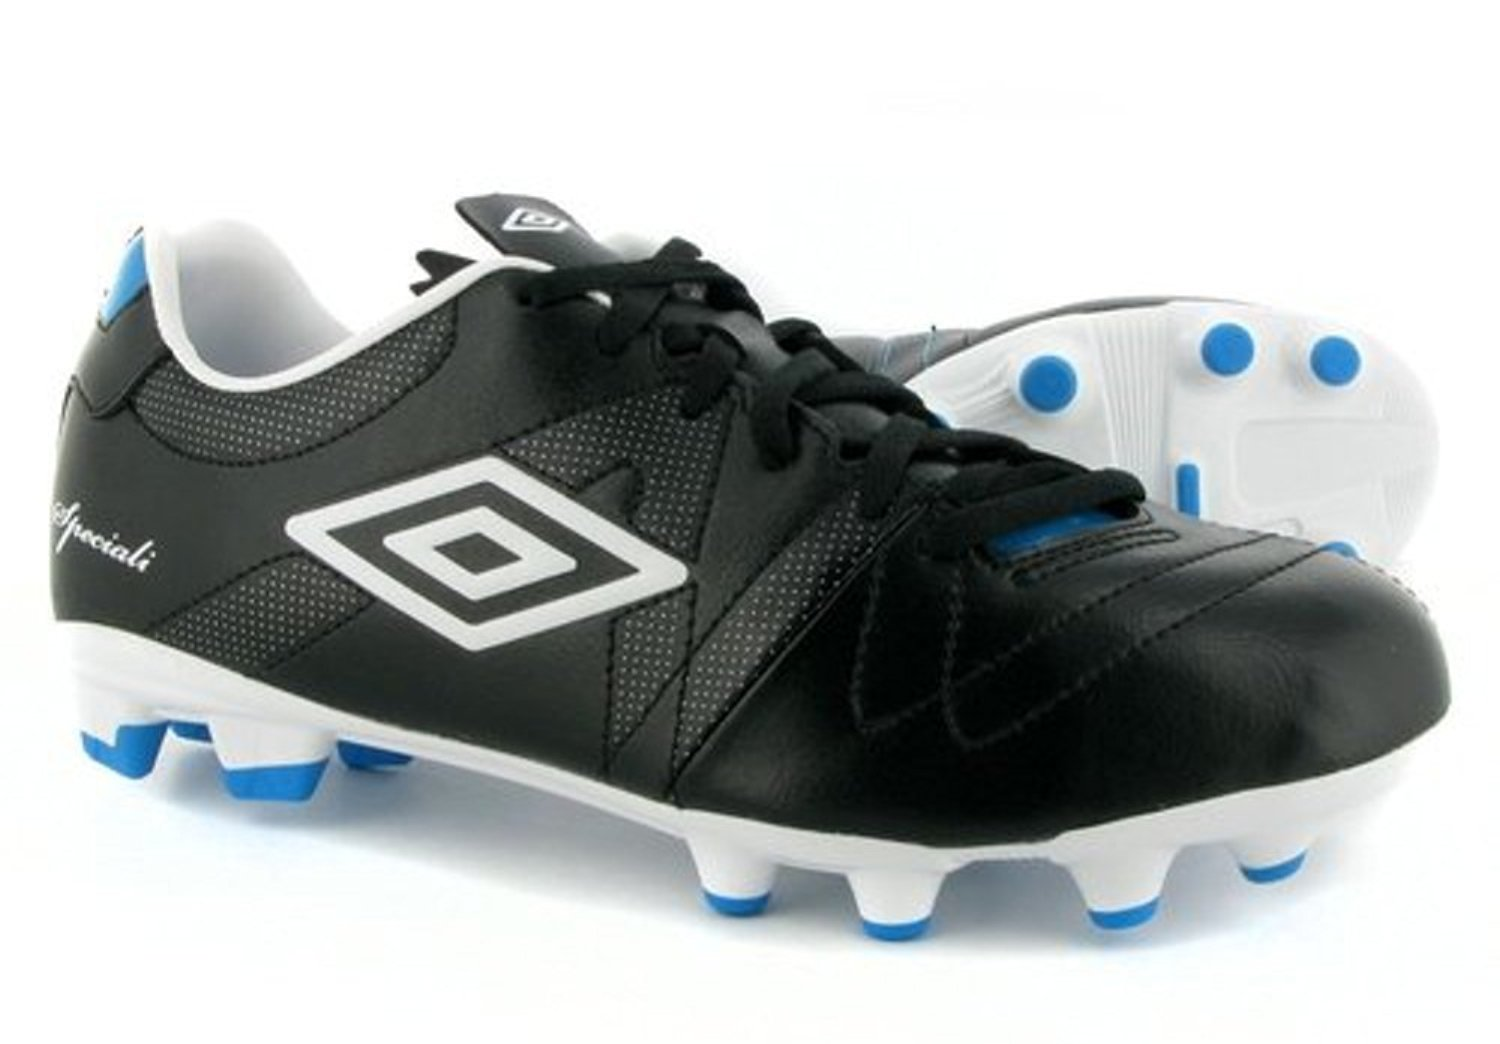 d5093d80f82 Cheap Umbro Speciali Football Boots, find Umbro Speciali Football ...